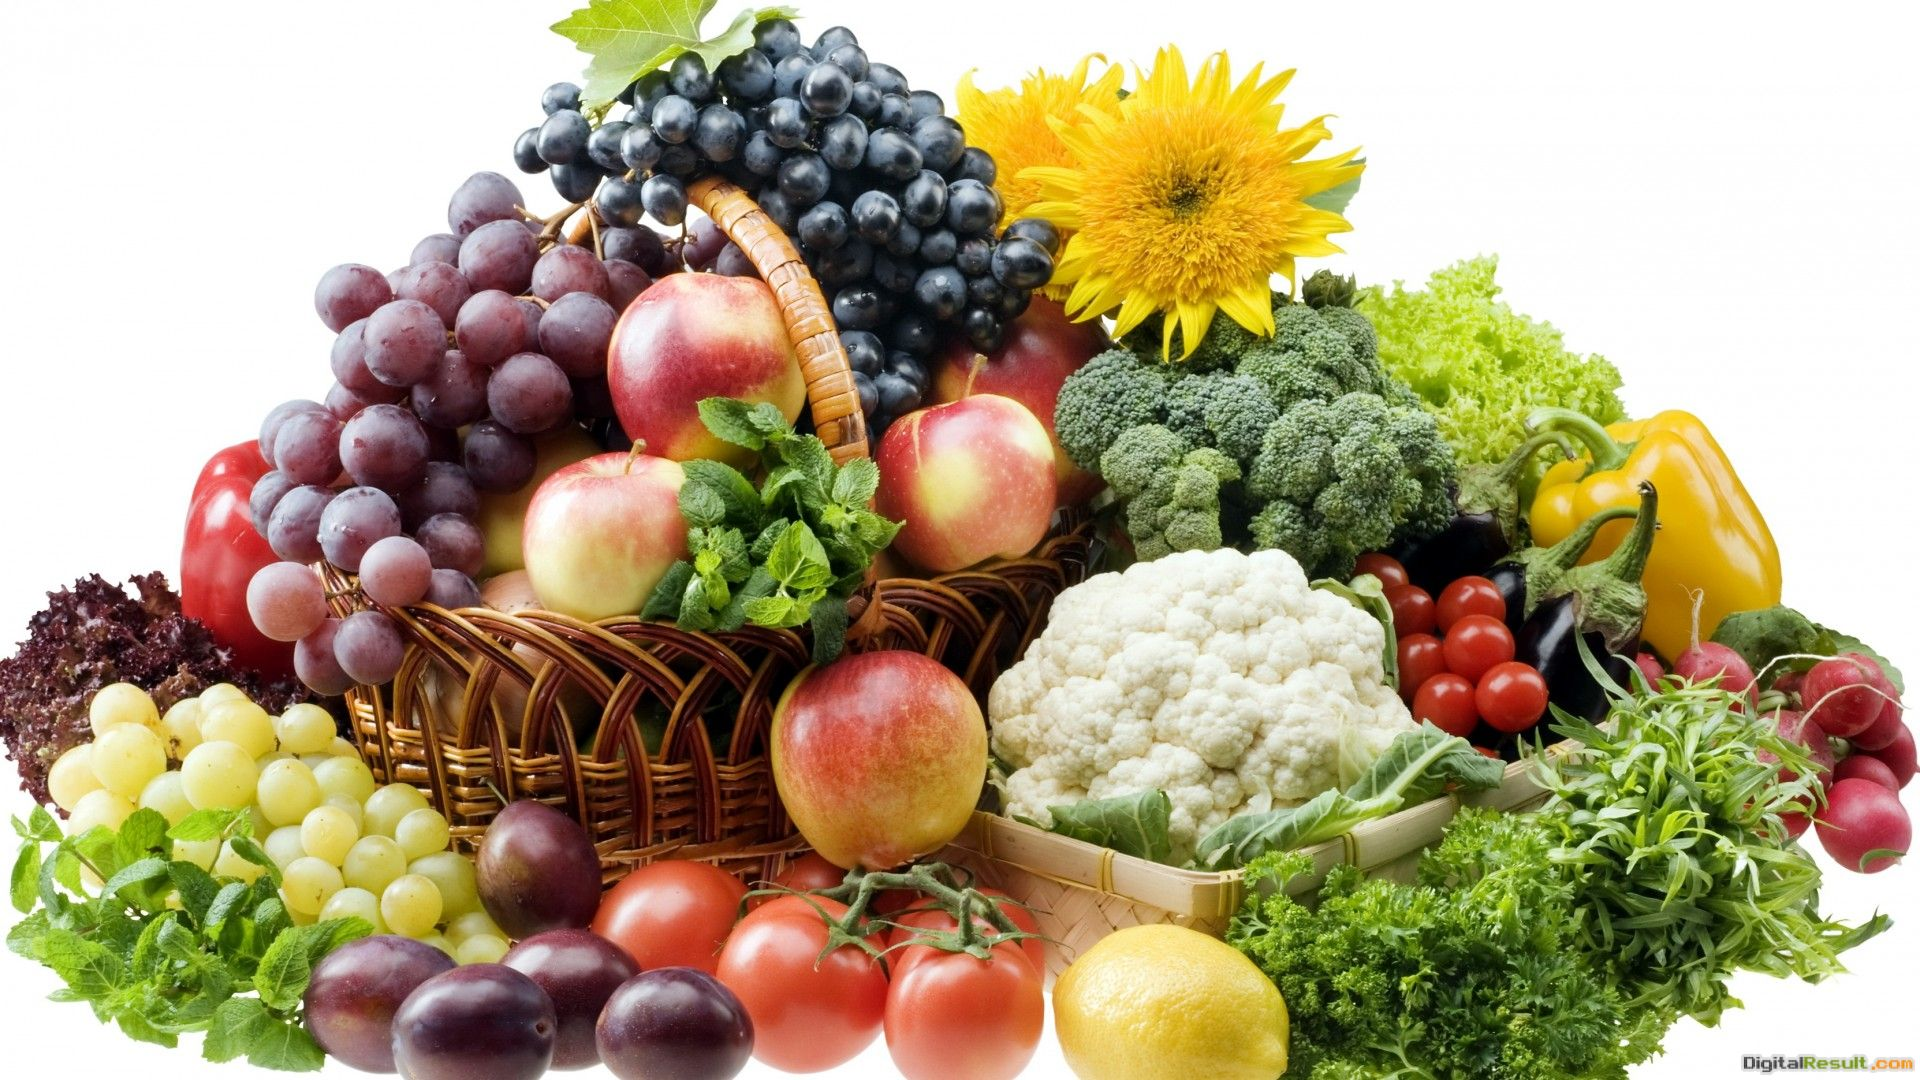 Aiming to lose weight? You have to eat the right kind of fruits and 1968